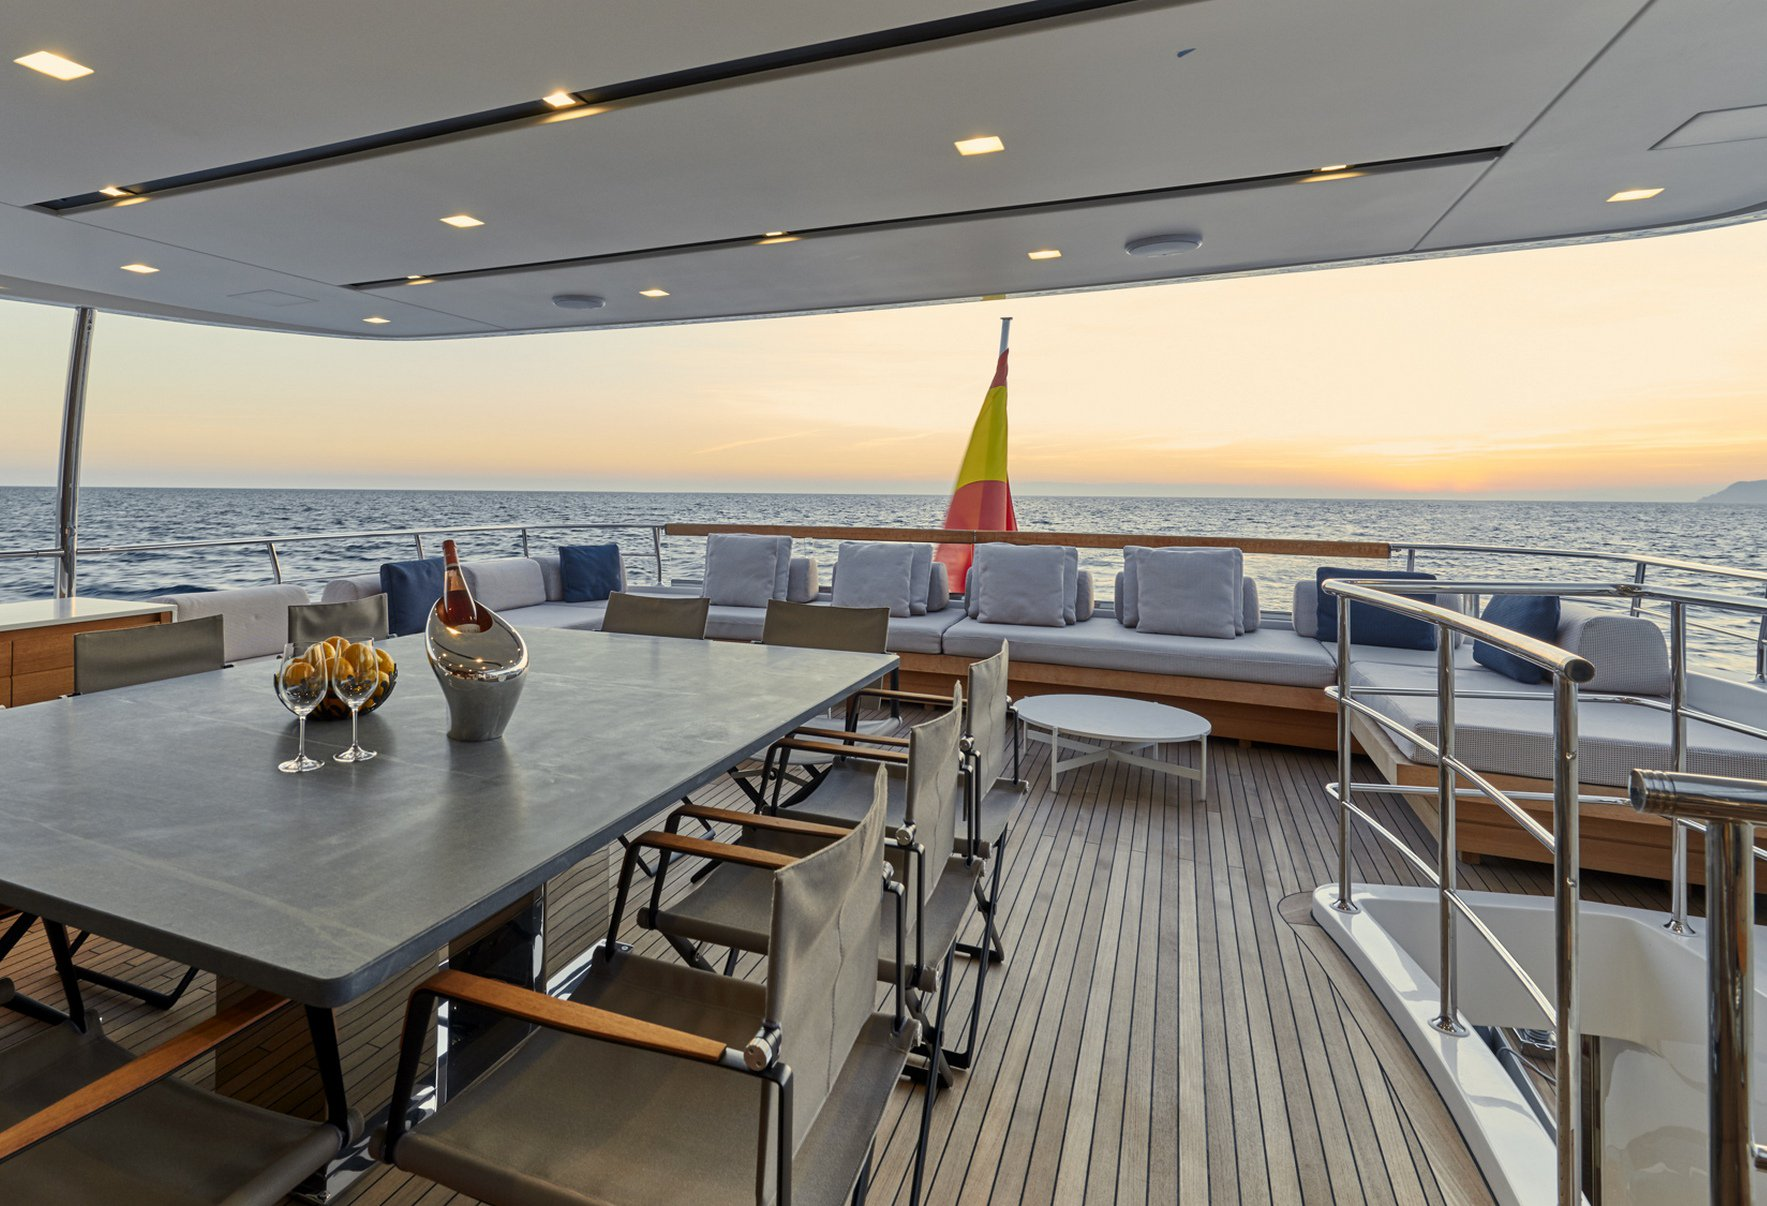 Aft deck alfresco dining area with seating